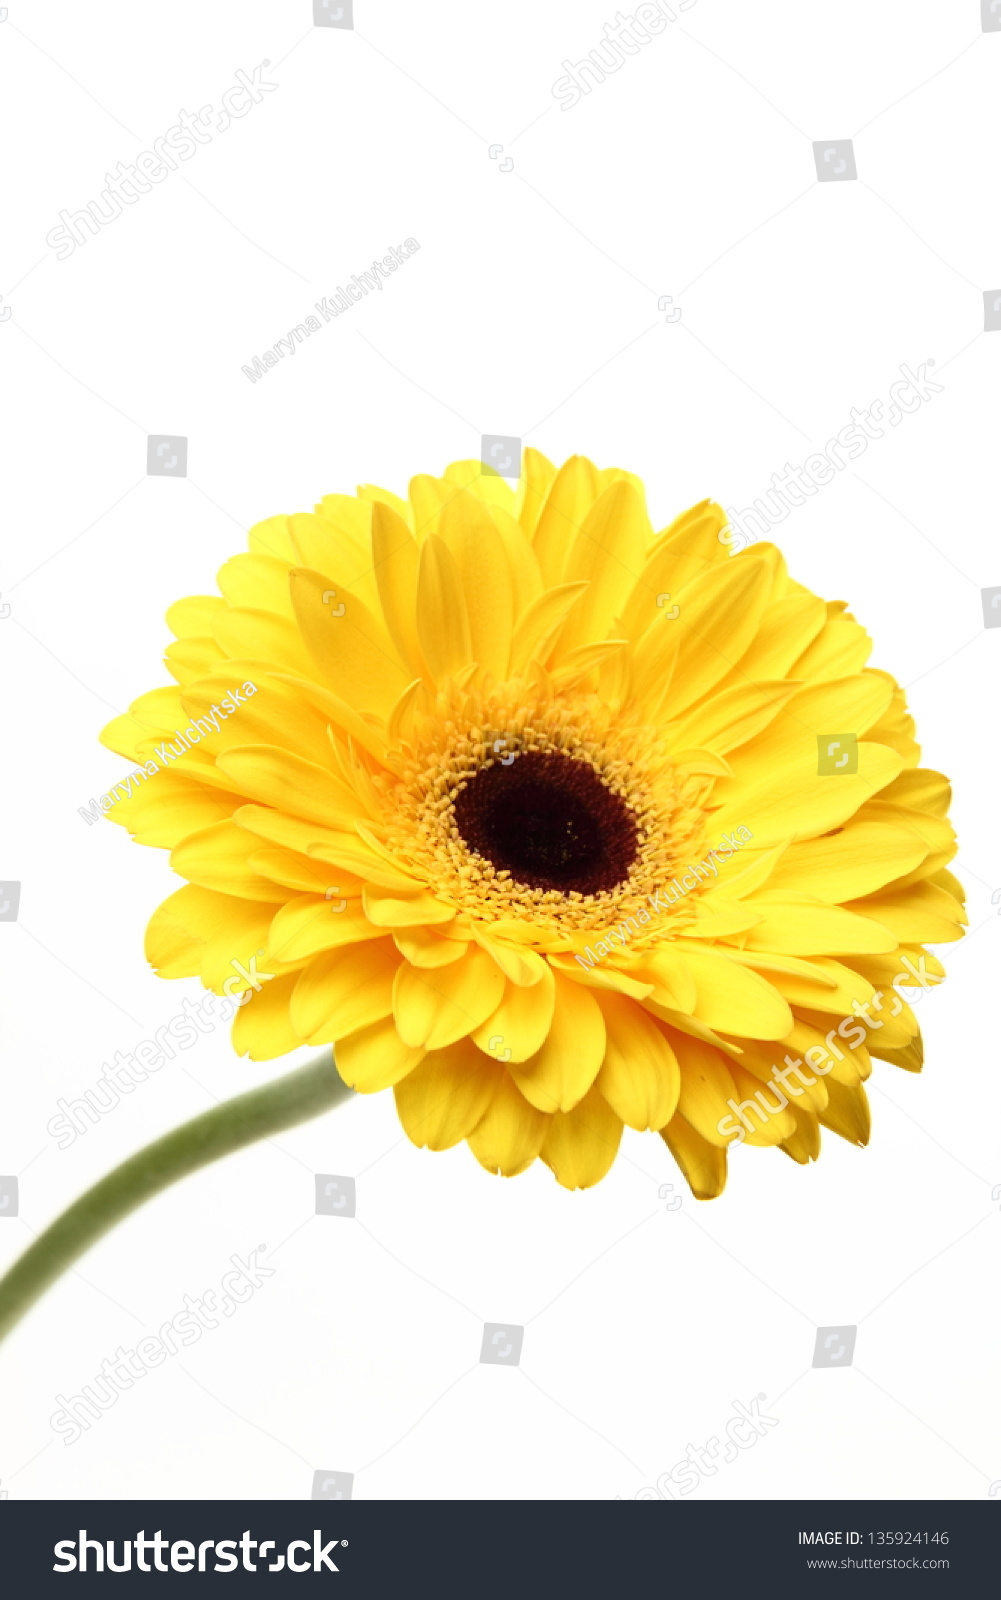 Single Flower Over White Background On Stock Photo Royalty Free